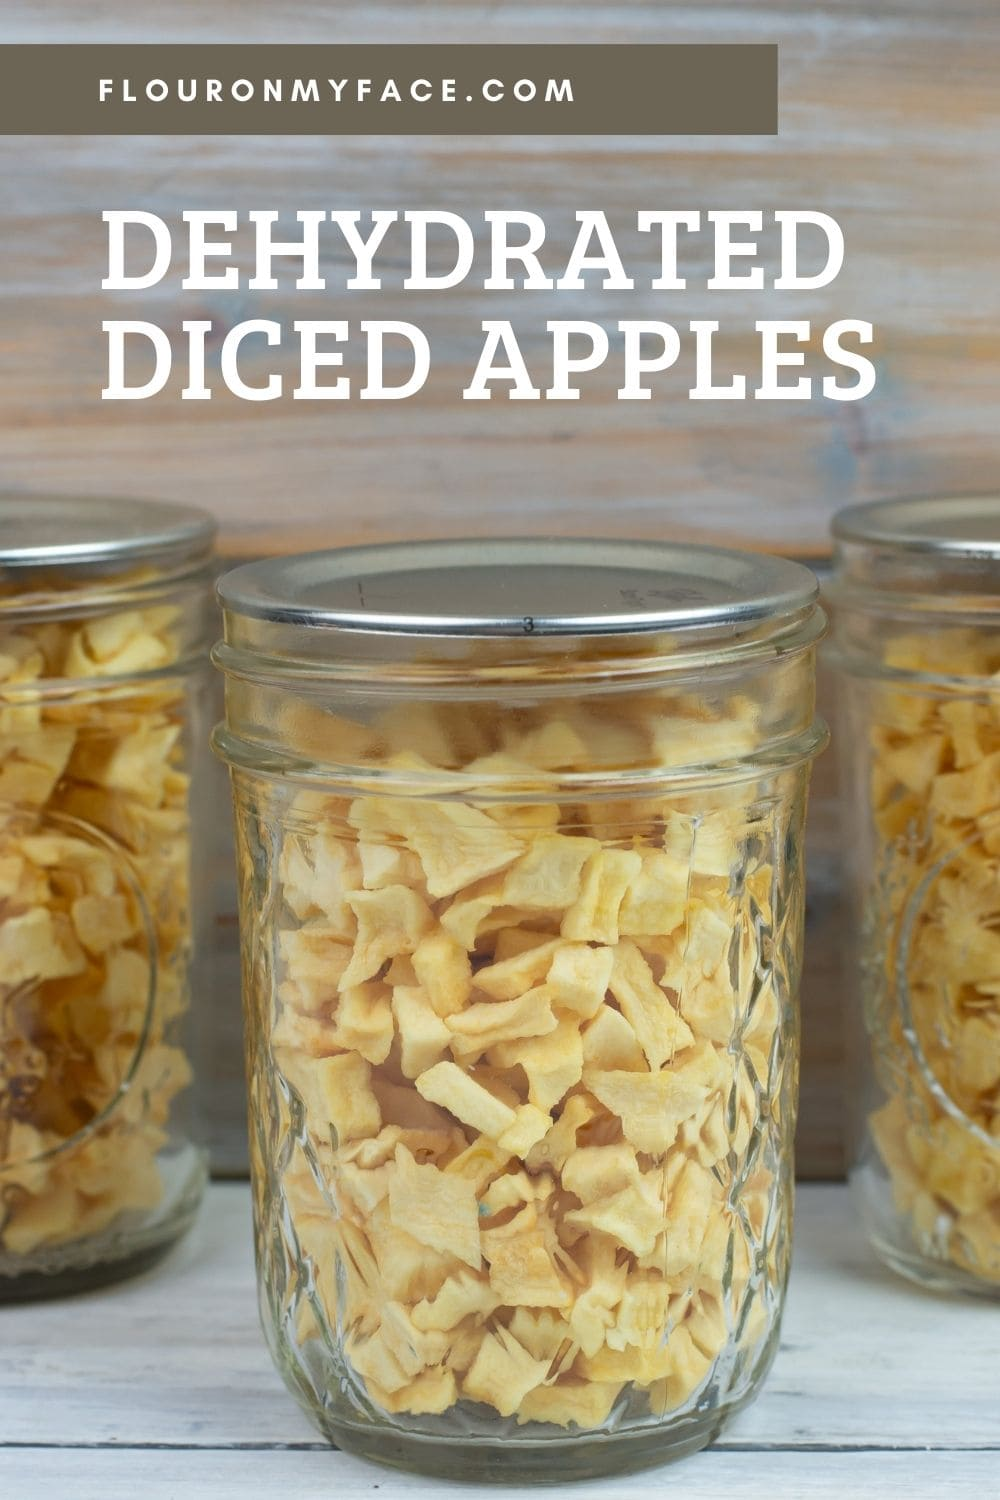 Dried Apple pieces in a jar.